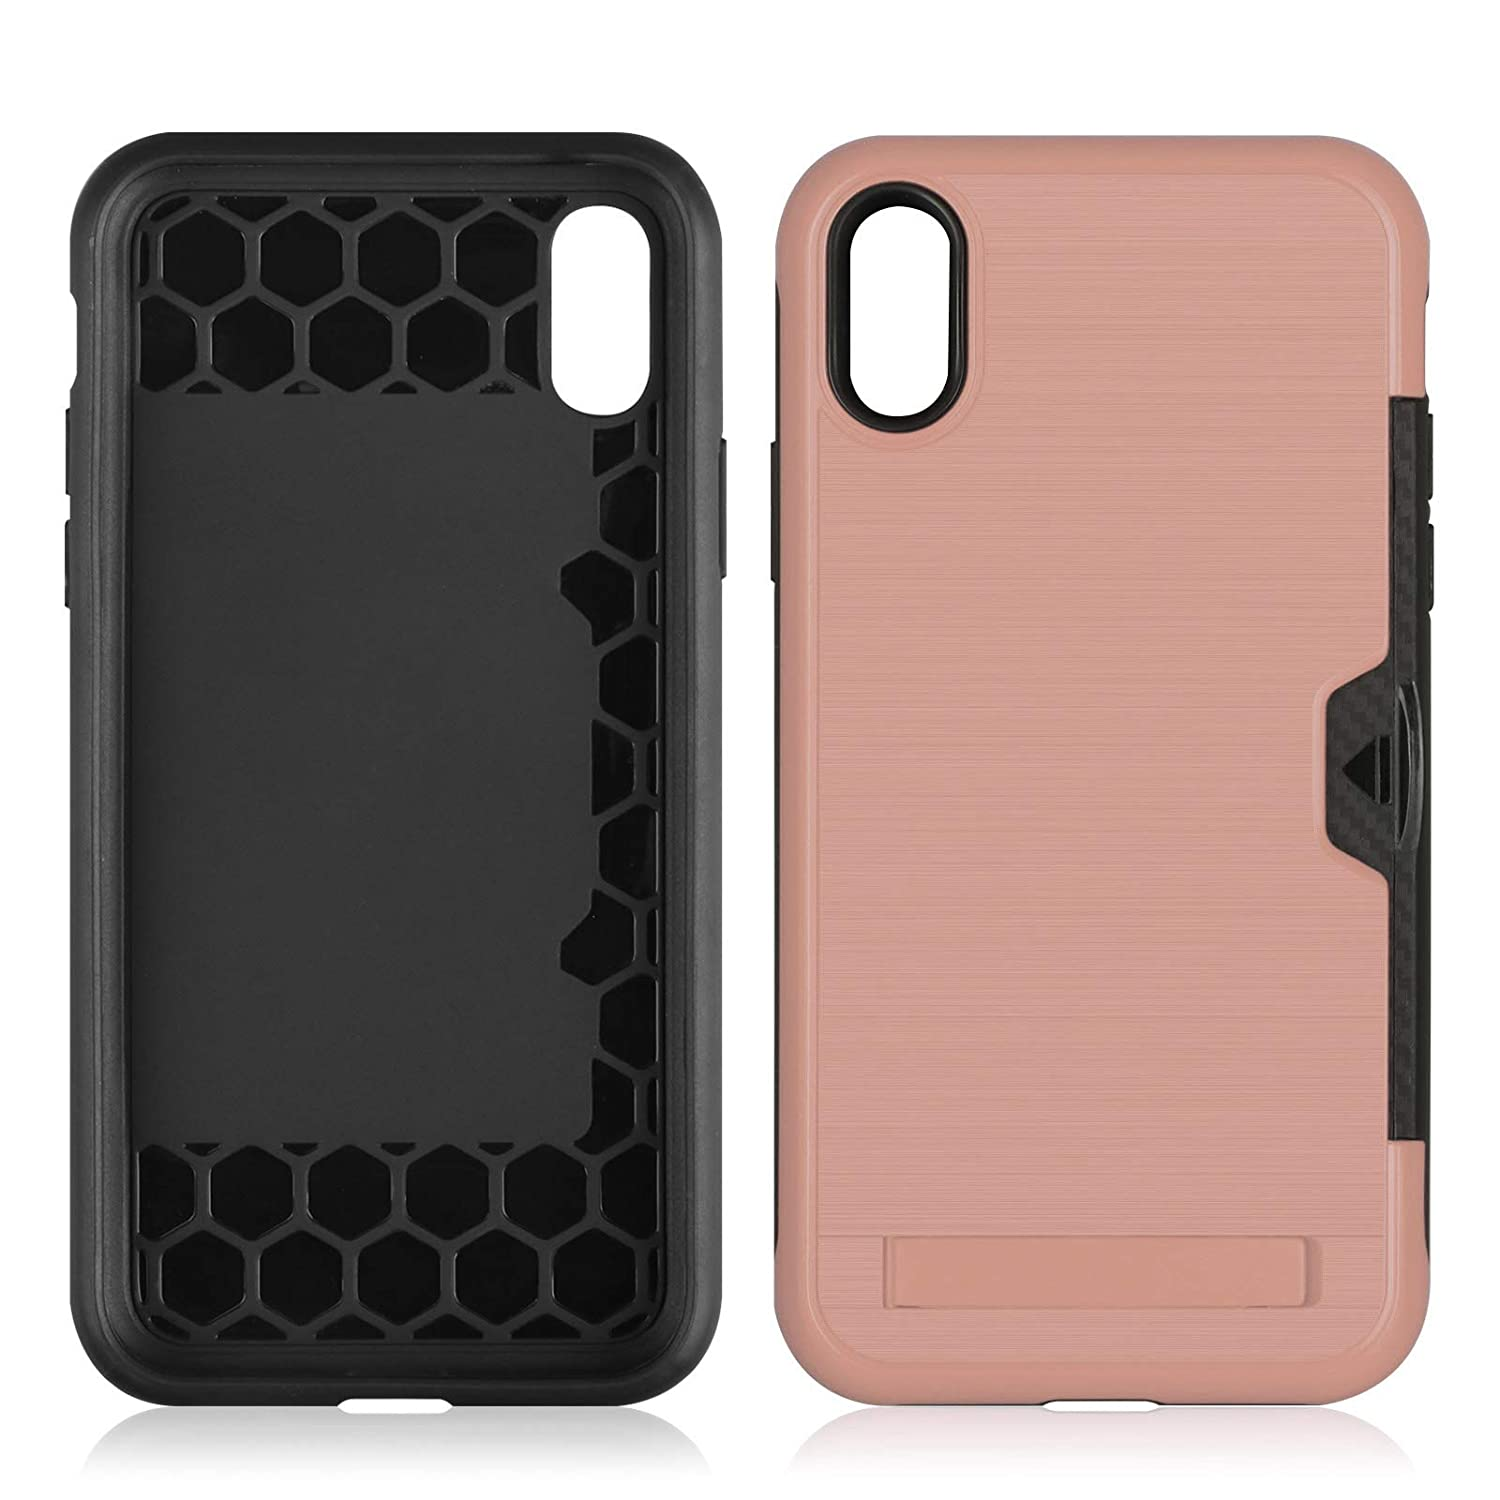 iPhone Xs Max Case,DAMONDY Kickstand Ultra Thin Dual Layer Shock Protective Rugged Armor Hybrid PC+Soft TPU Heavy Duty Protection Card Slot Holder Cover Case for iPhone Xs Max 6.5 inch-Silver